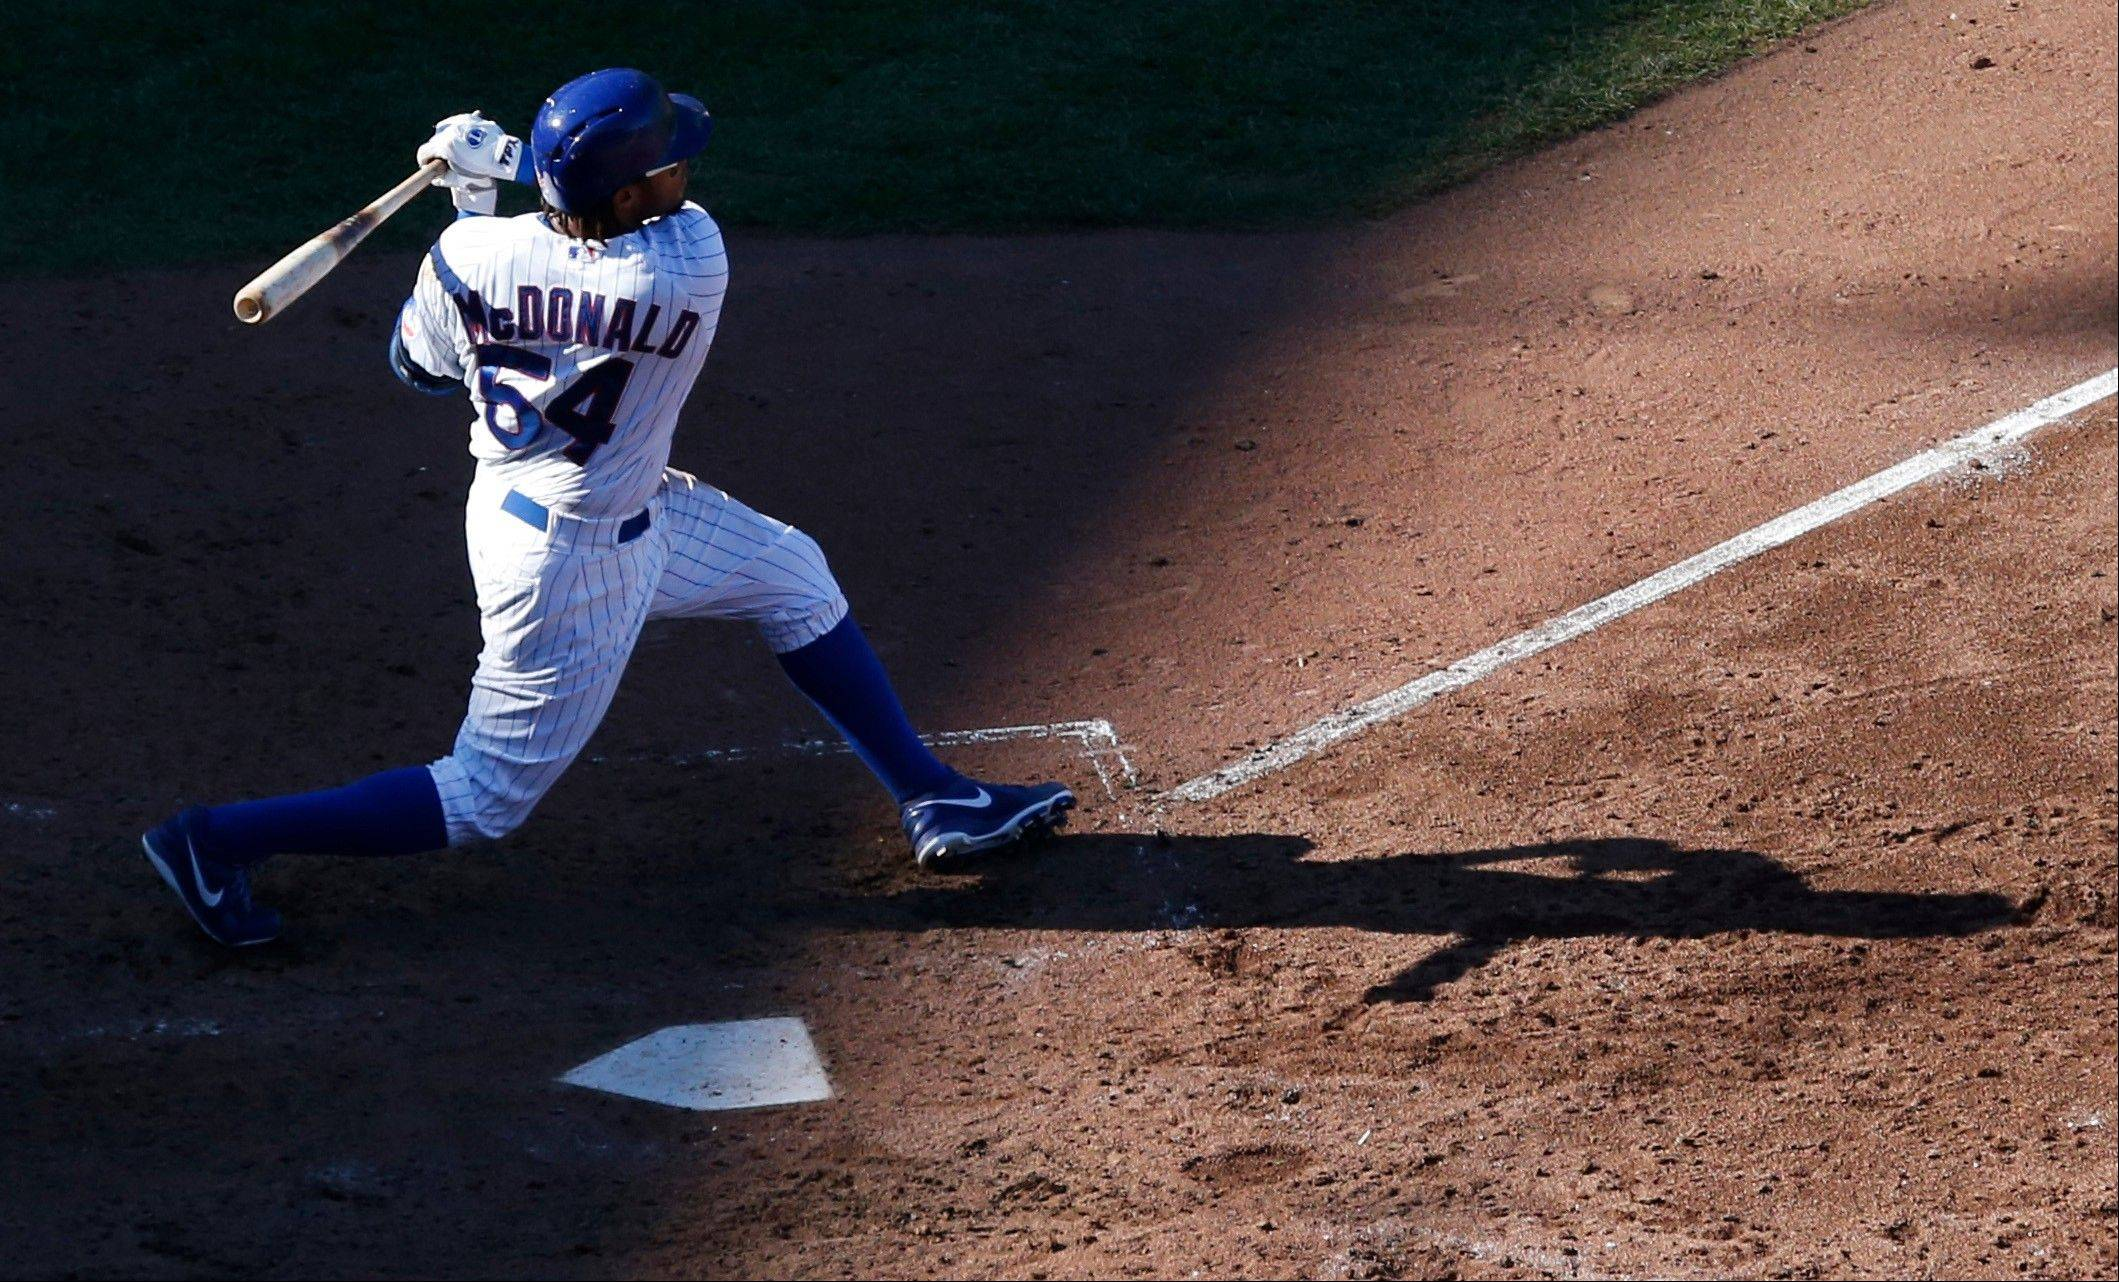 Chicago Cubs' Darnell McDonald hits a three-run home run off Pittsburgh Pirates starting pitcher Francisco Liriano during the sixth inning of a baseball game on Wednesday in Chicago.